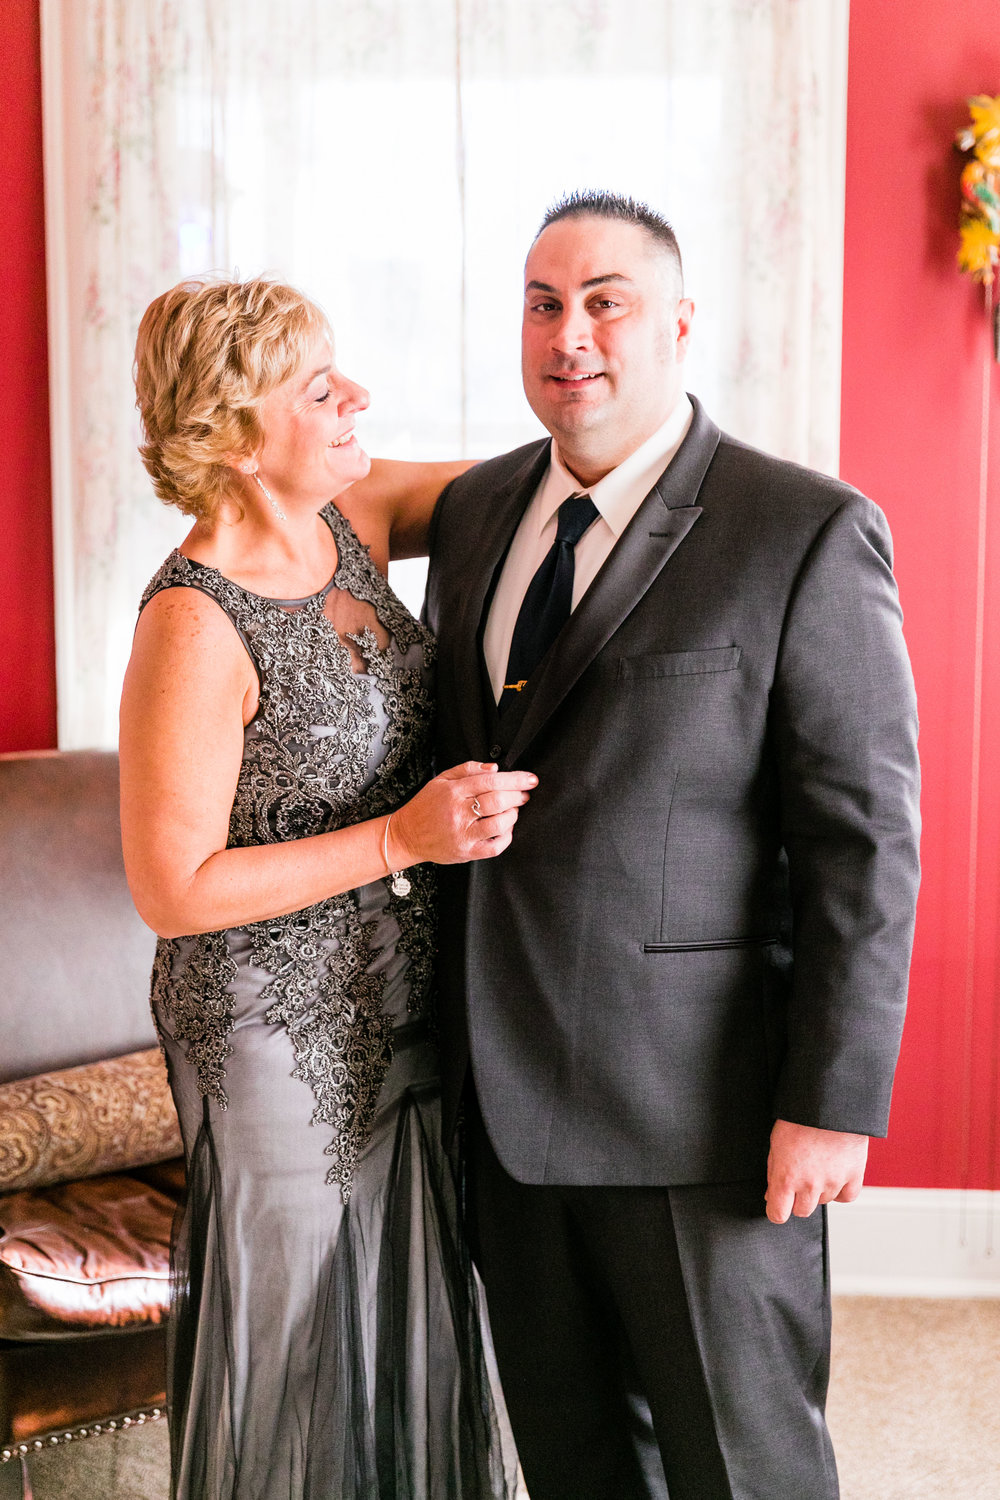 Nicole + Tony - Vie Cescaphe Event Group Wedding-028.jpg